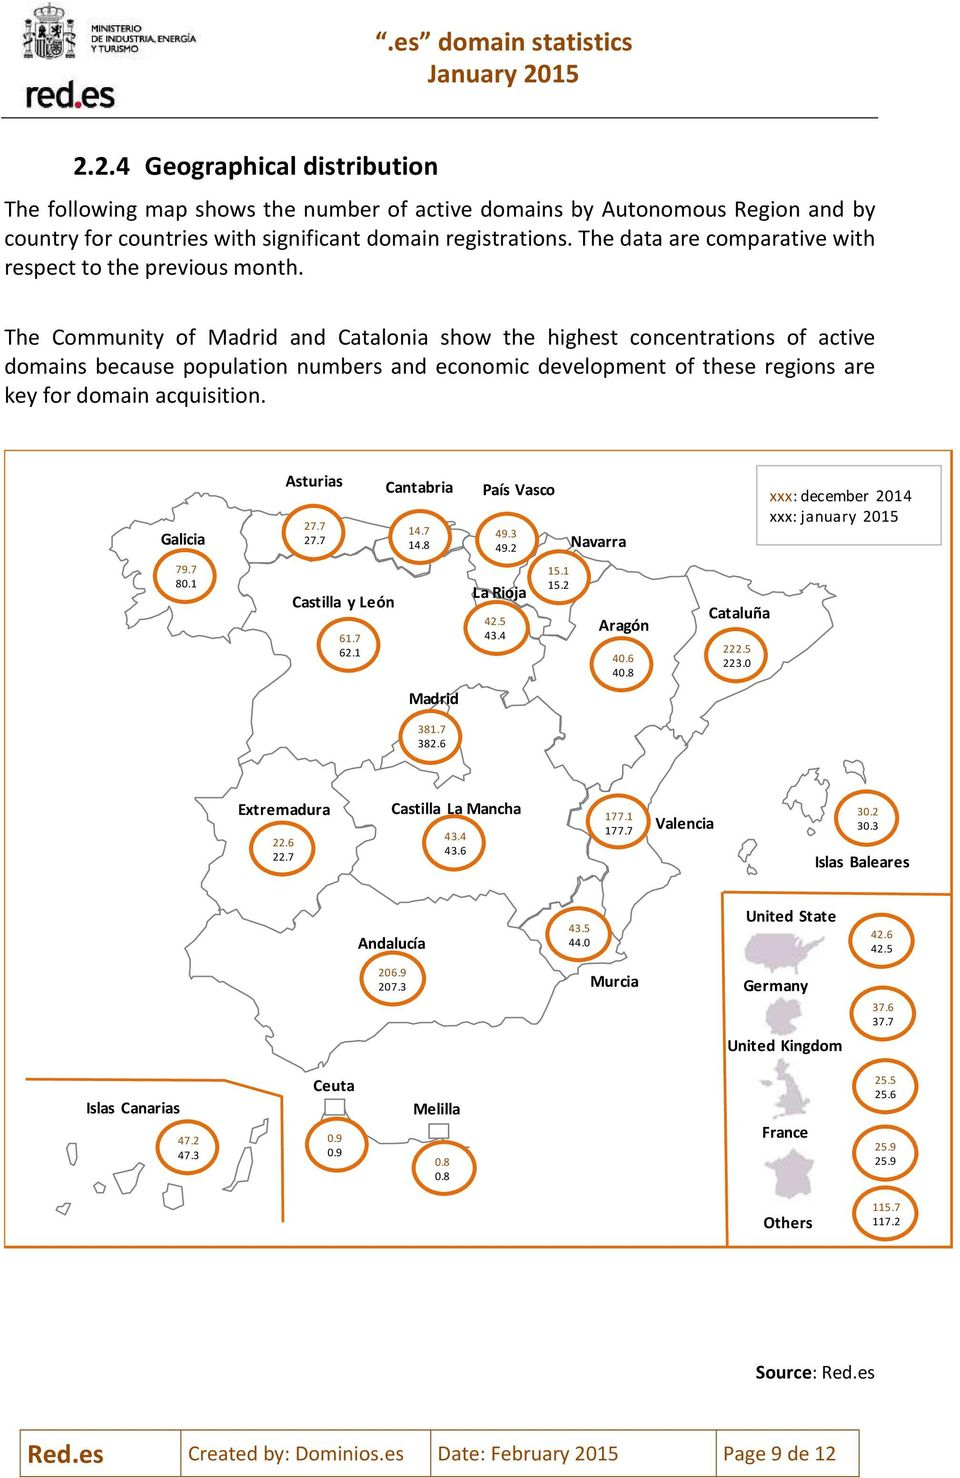 The Community of Madrid and Catalonia show the highest concentrations of active domains because population numbers and economic development of these regions are key for domain acquisition. Galicia 79.